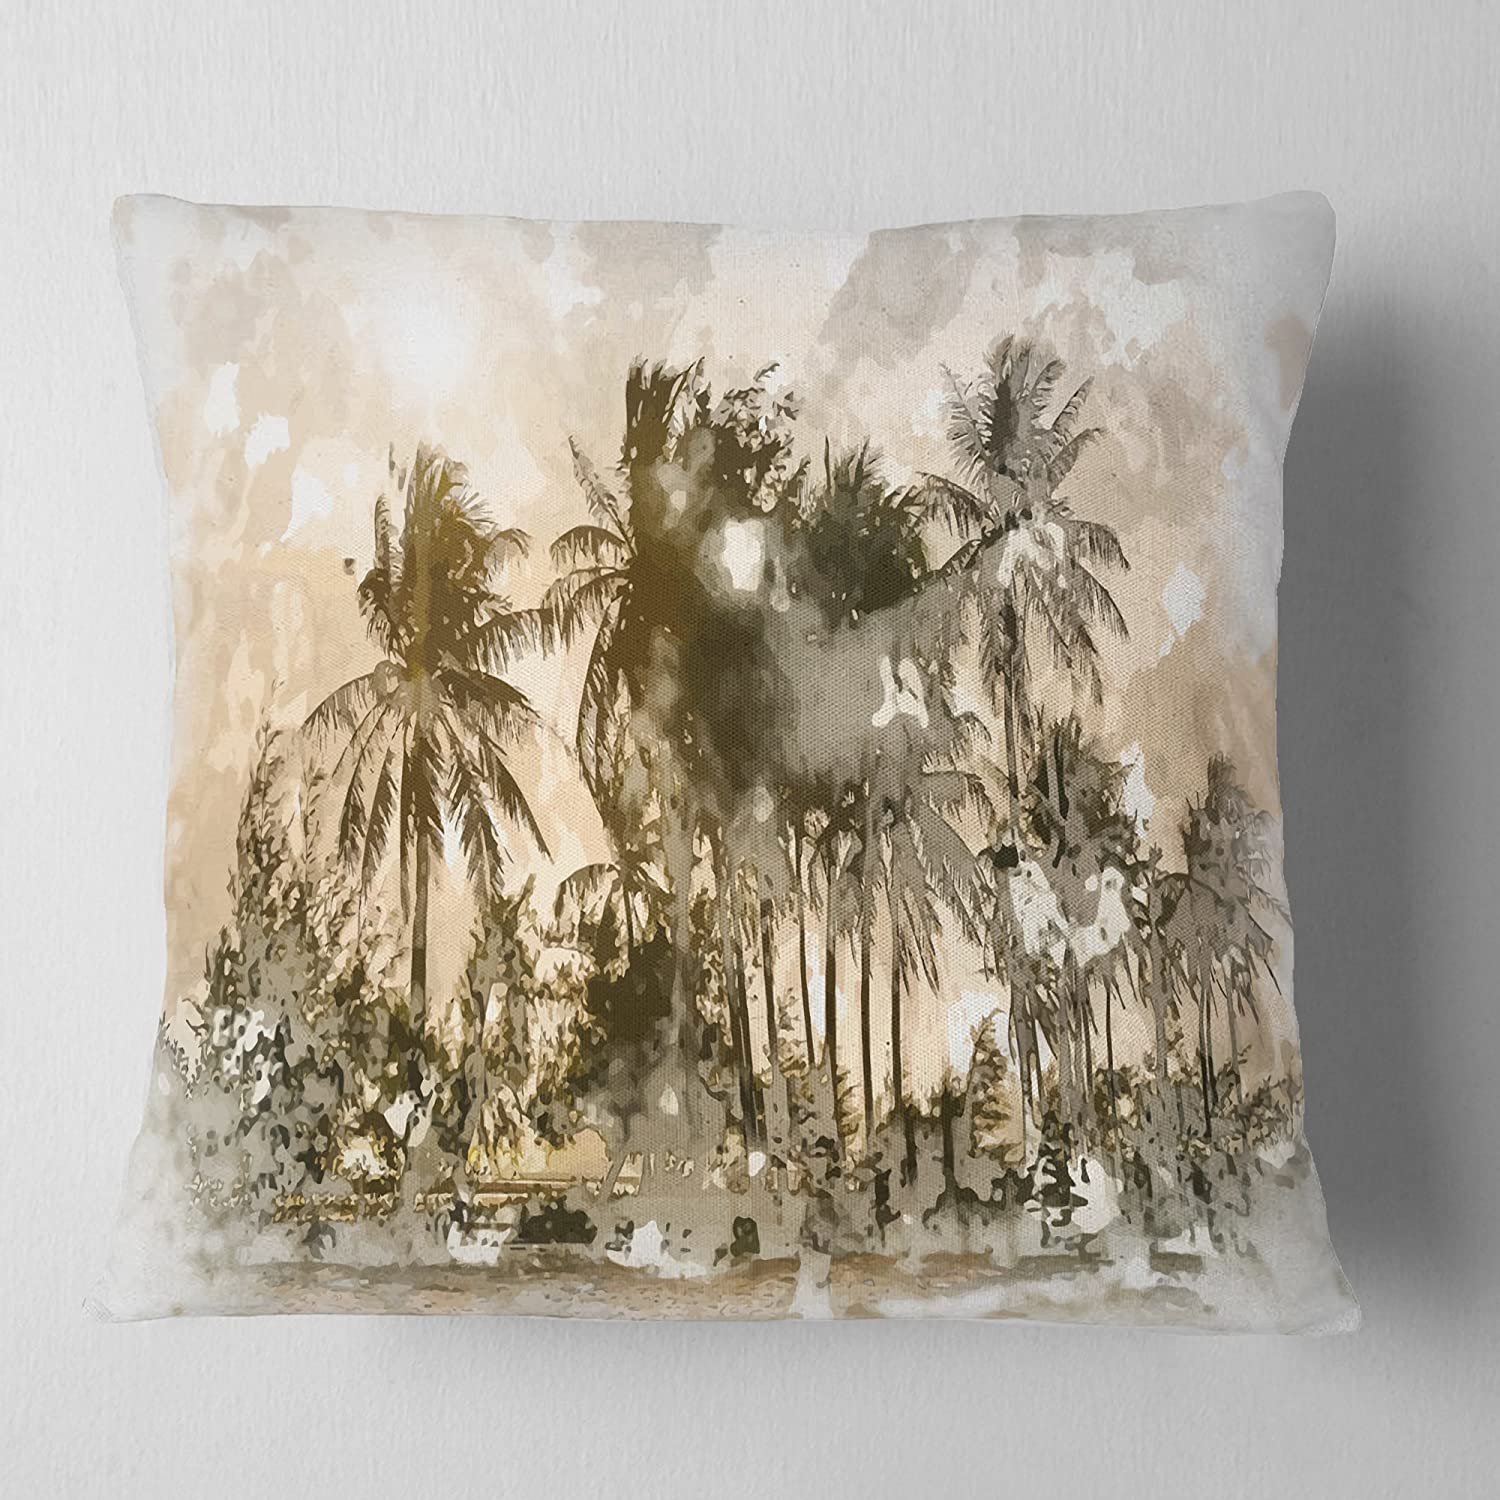 Designart CU7640-26-26 Dark Palms at Sunset' Landscape Printed Cushion Cover for Living Room, Sofa Throw Pillow 26 in. x 26 in. in